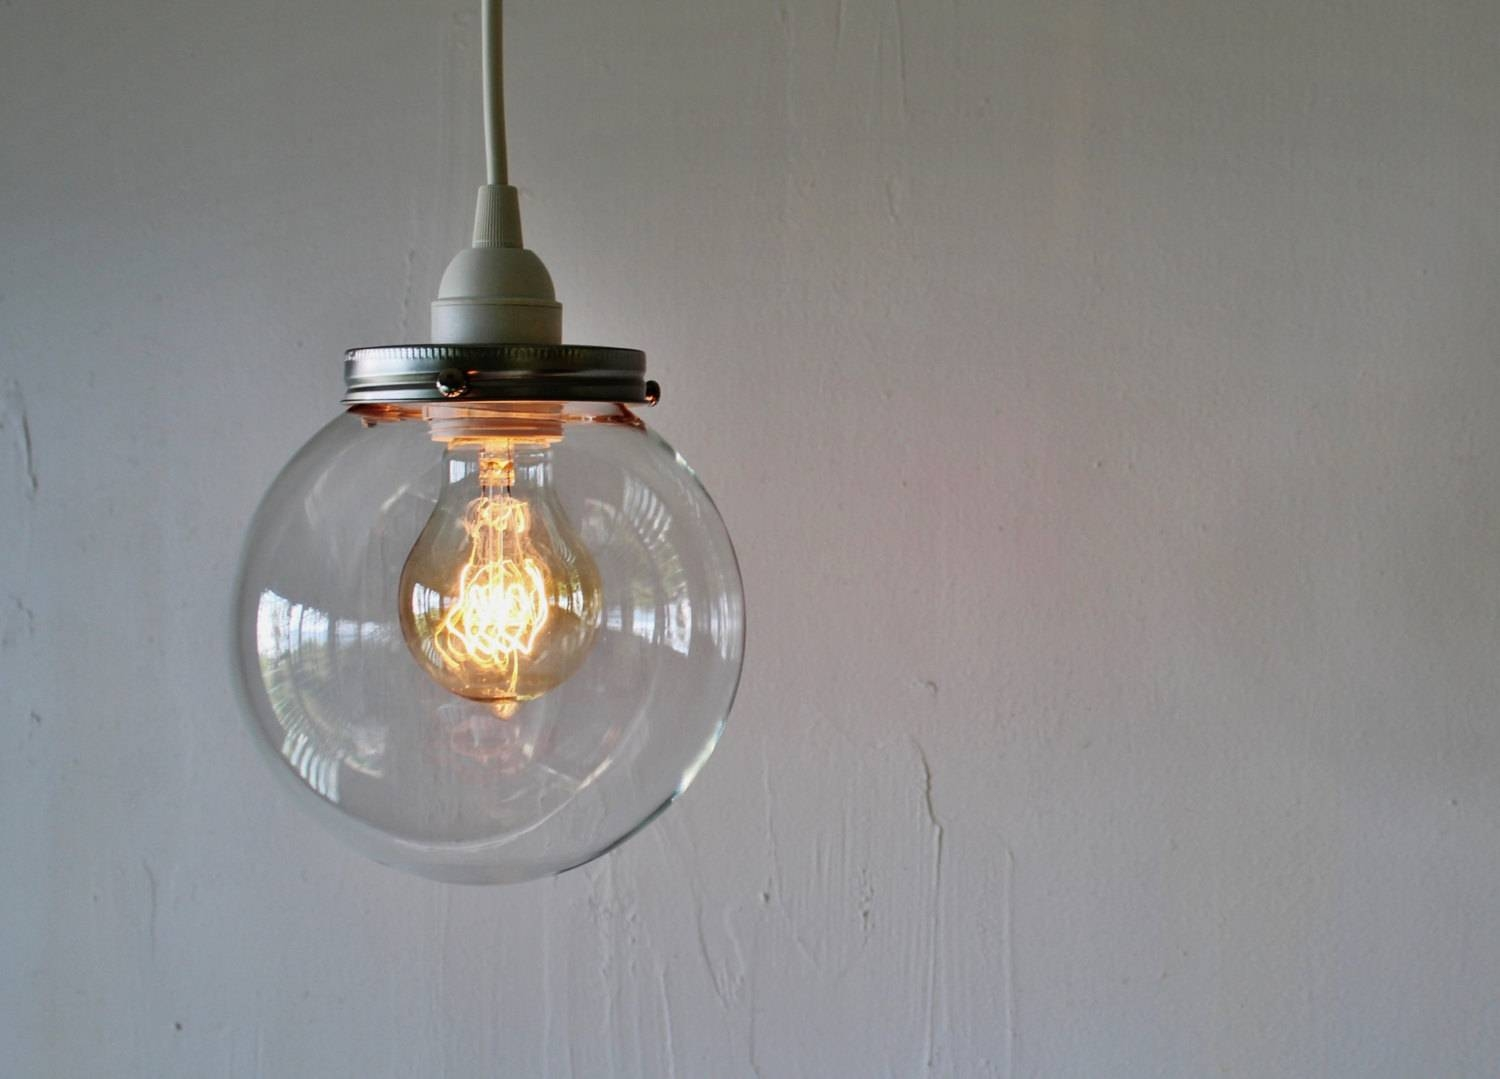 Crystal Ball Pendant Lamp Hanging Light With A Clear Round Regarding Glass Bowl Pendant Lights (View 7 of 15)